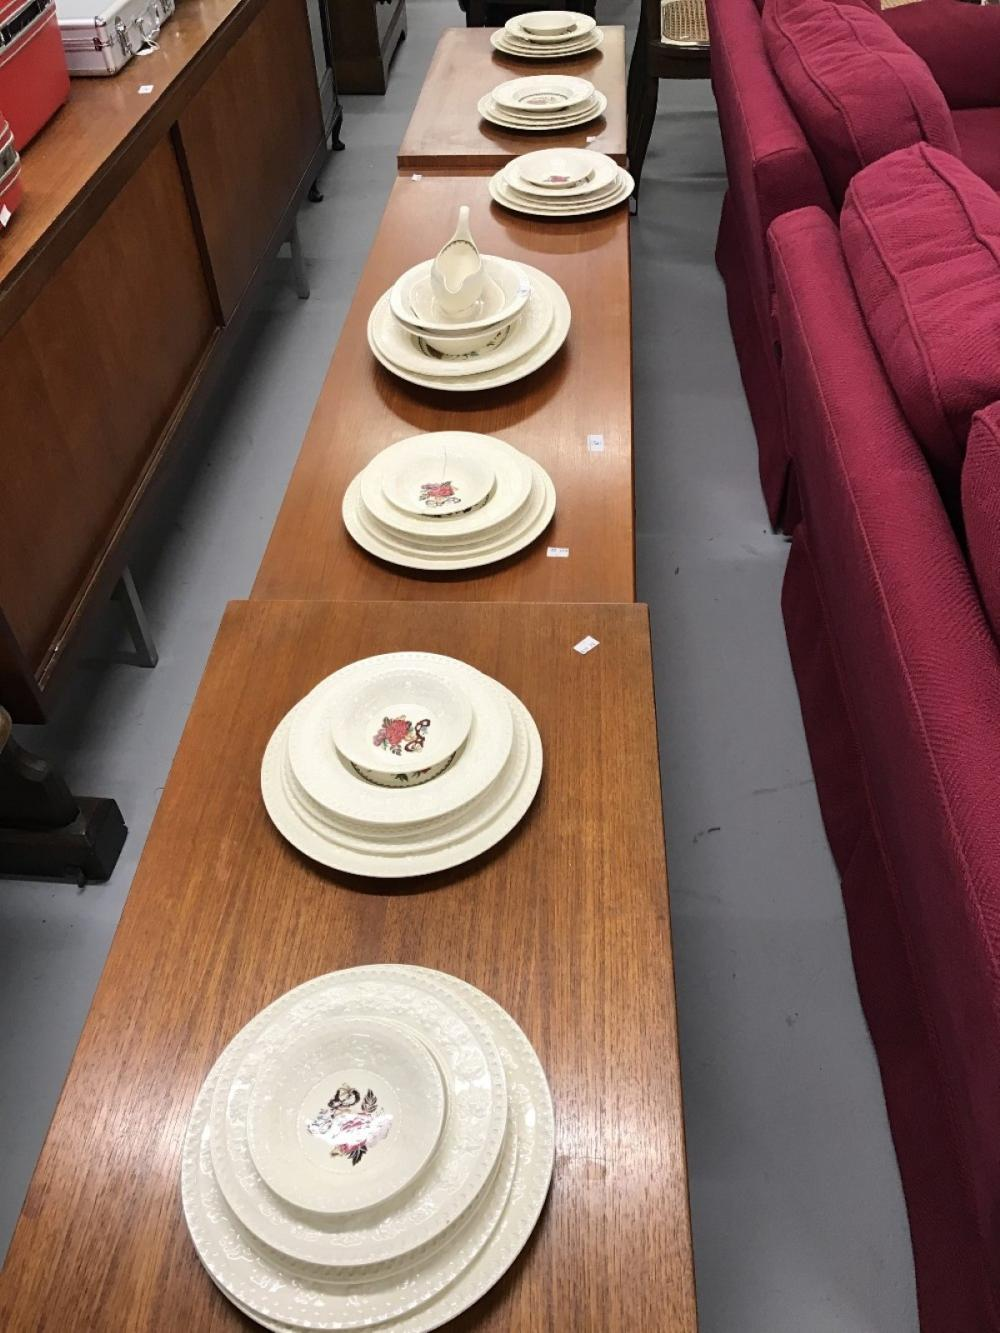 The Thomas E Skidmore Collection: 20th cent. Ceramics: Wellesley 'Bullfinch' dinnerware. Meat ovals